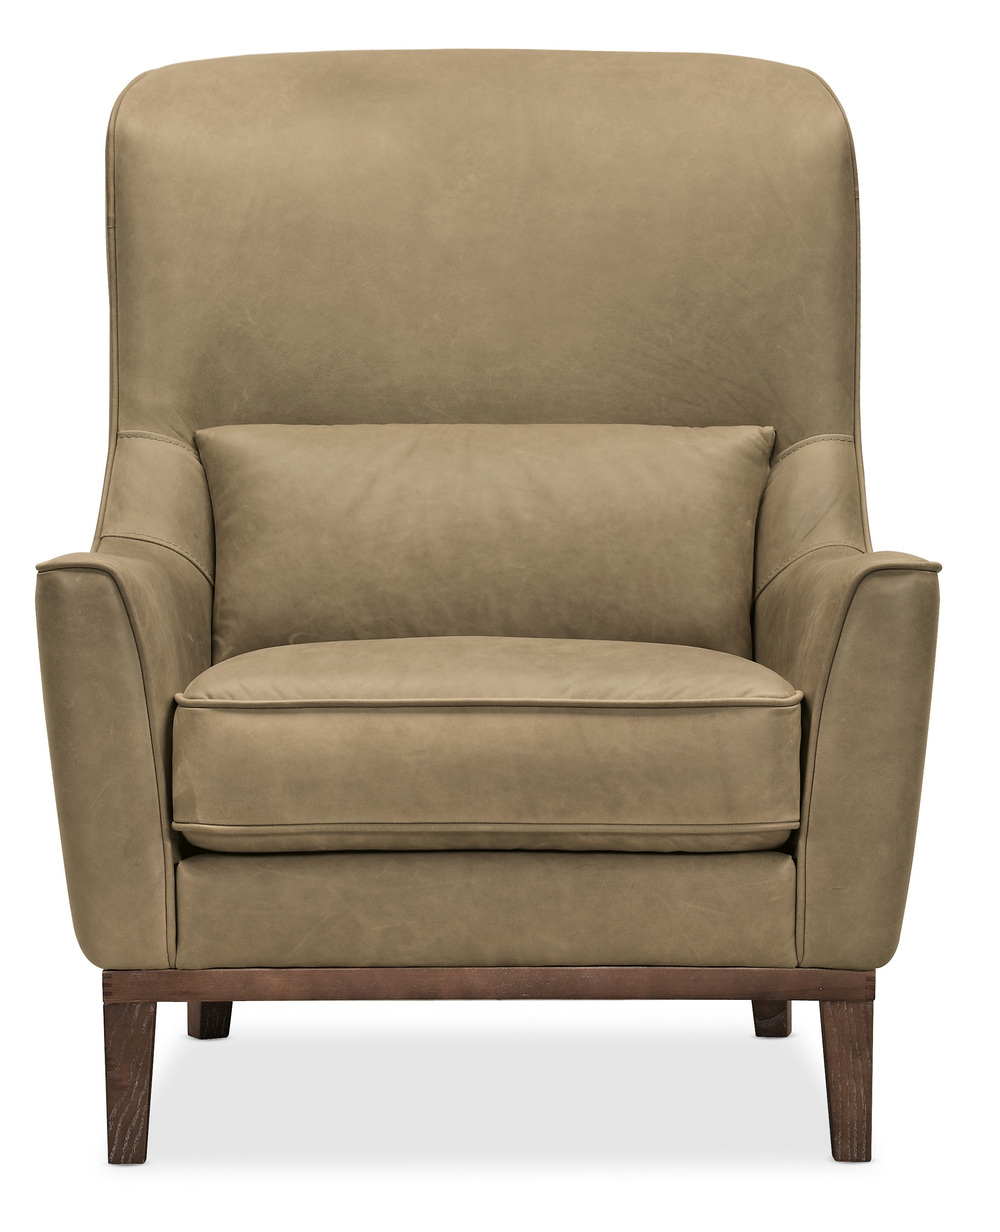 Hooker Furniture - Glover Club Chair